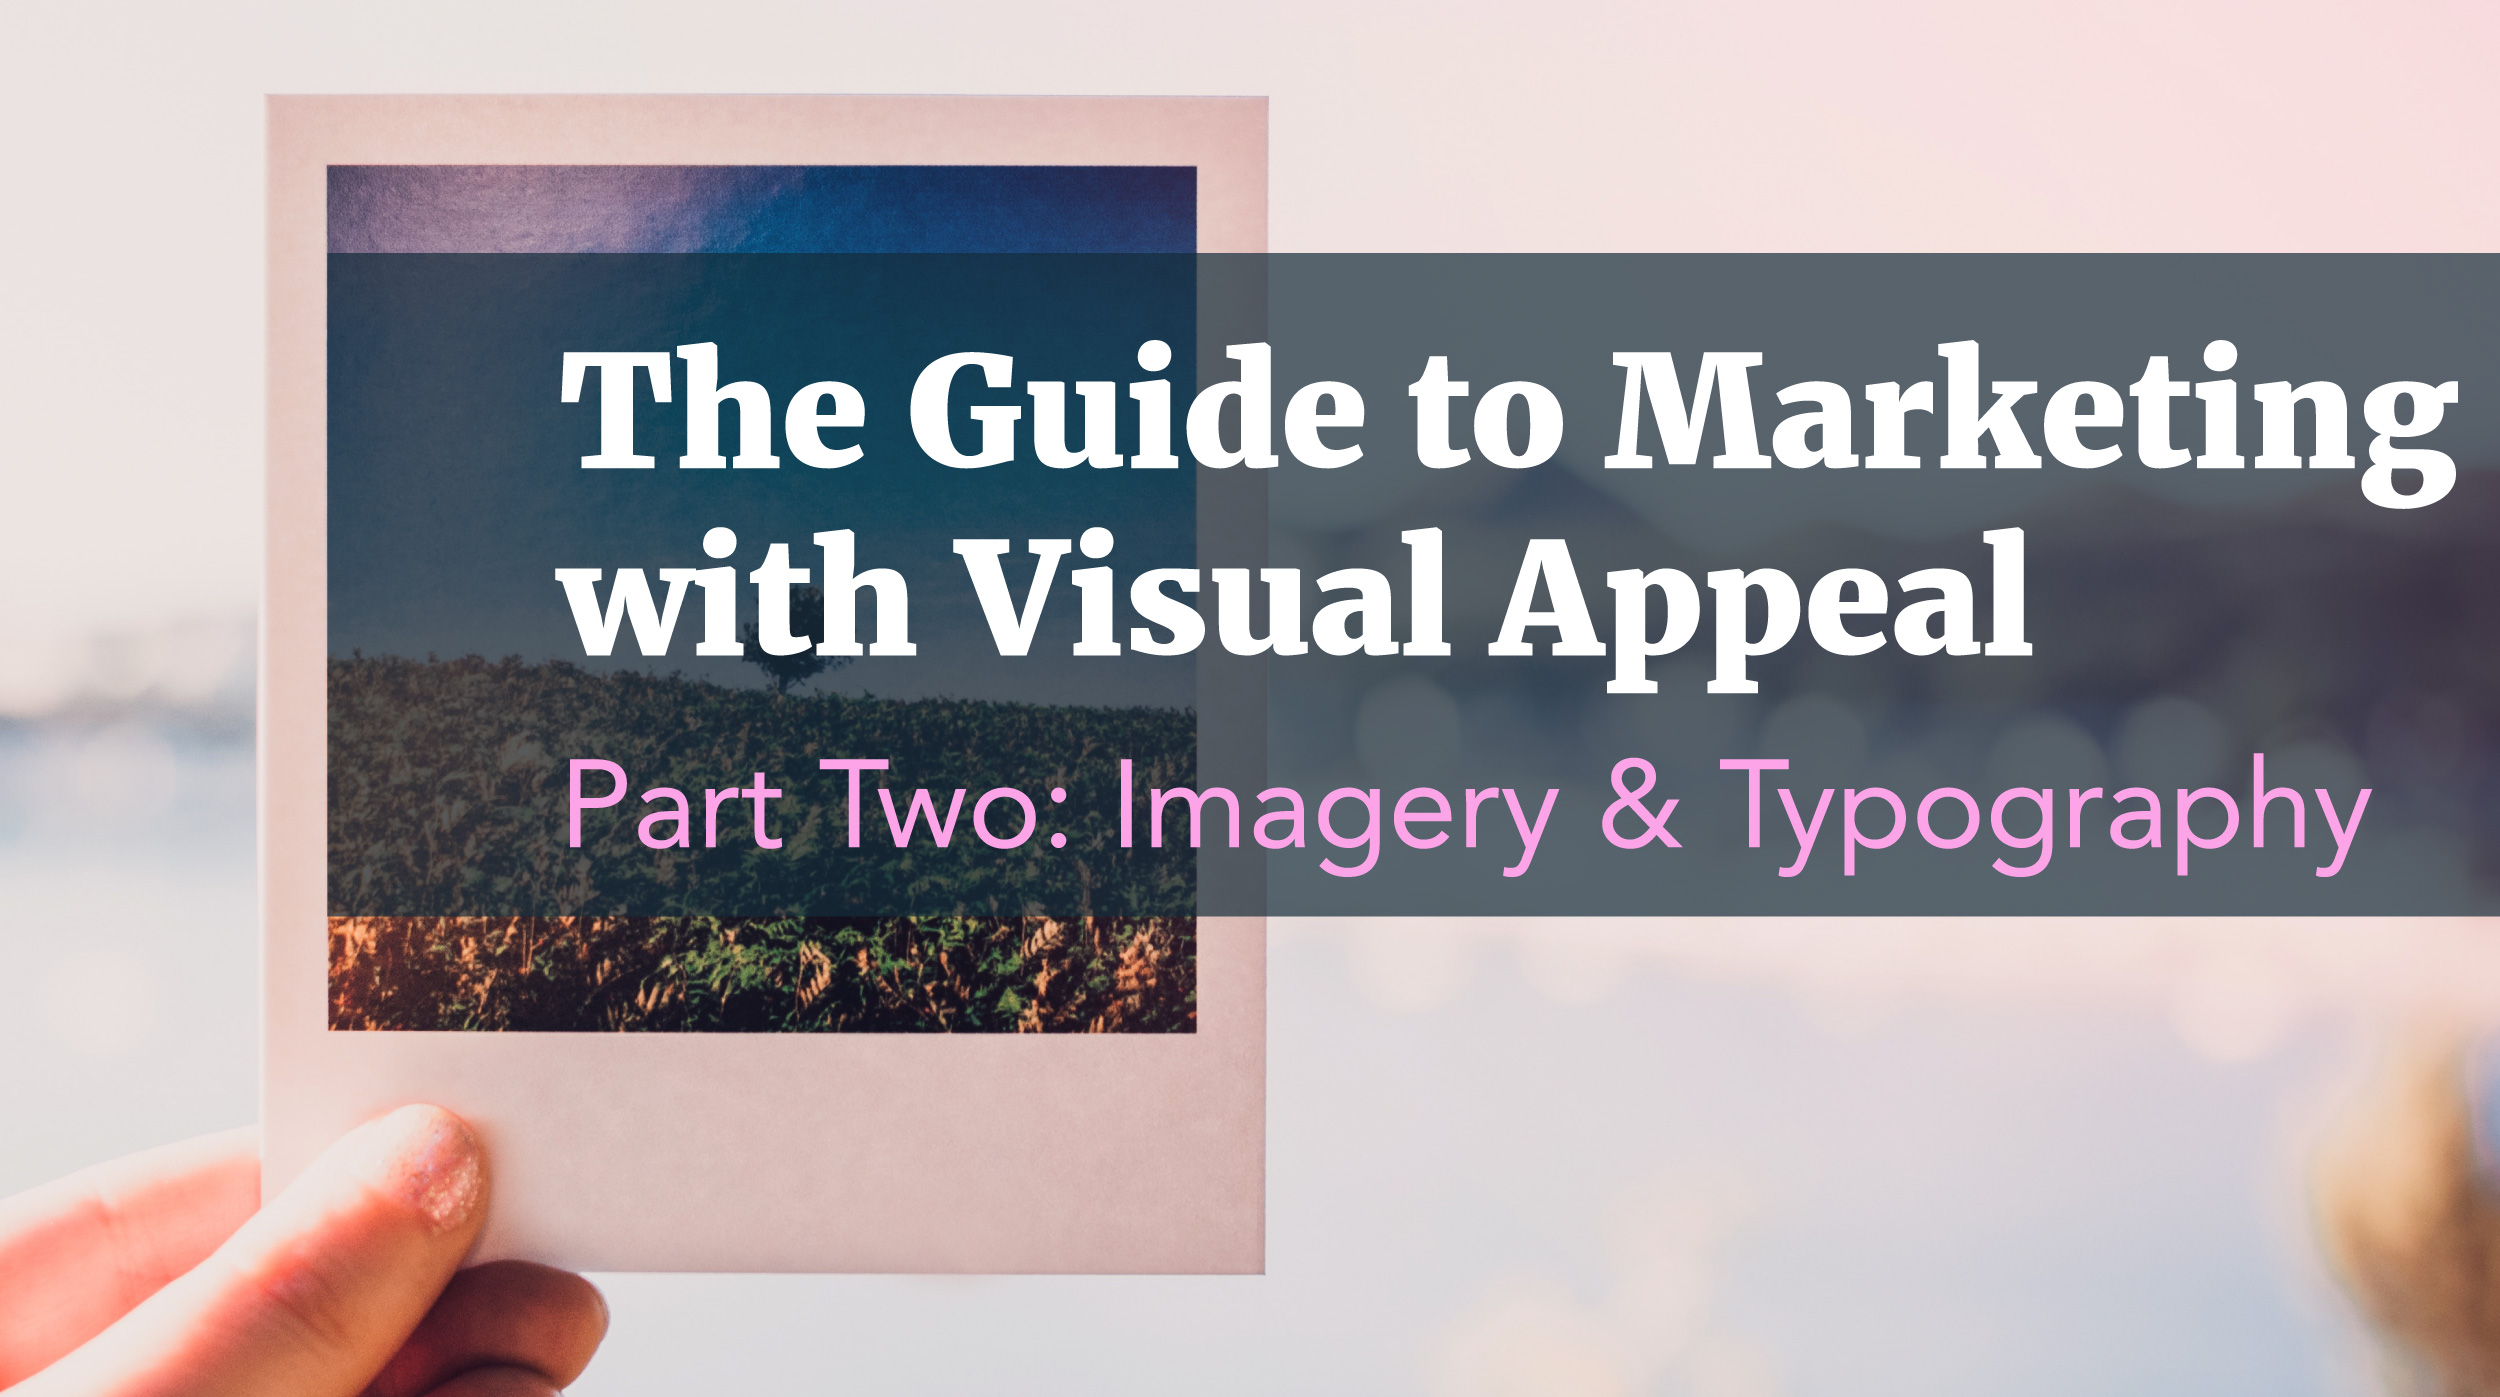 Imagery and Typography in Marketing